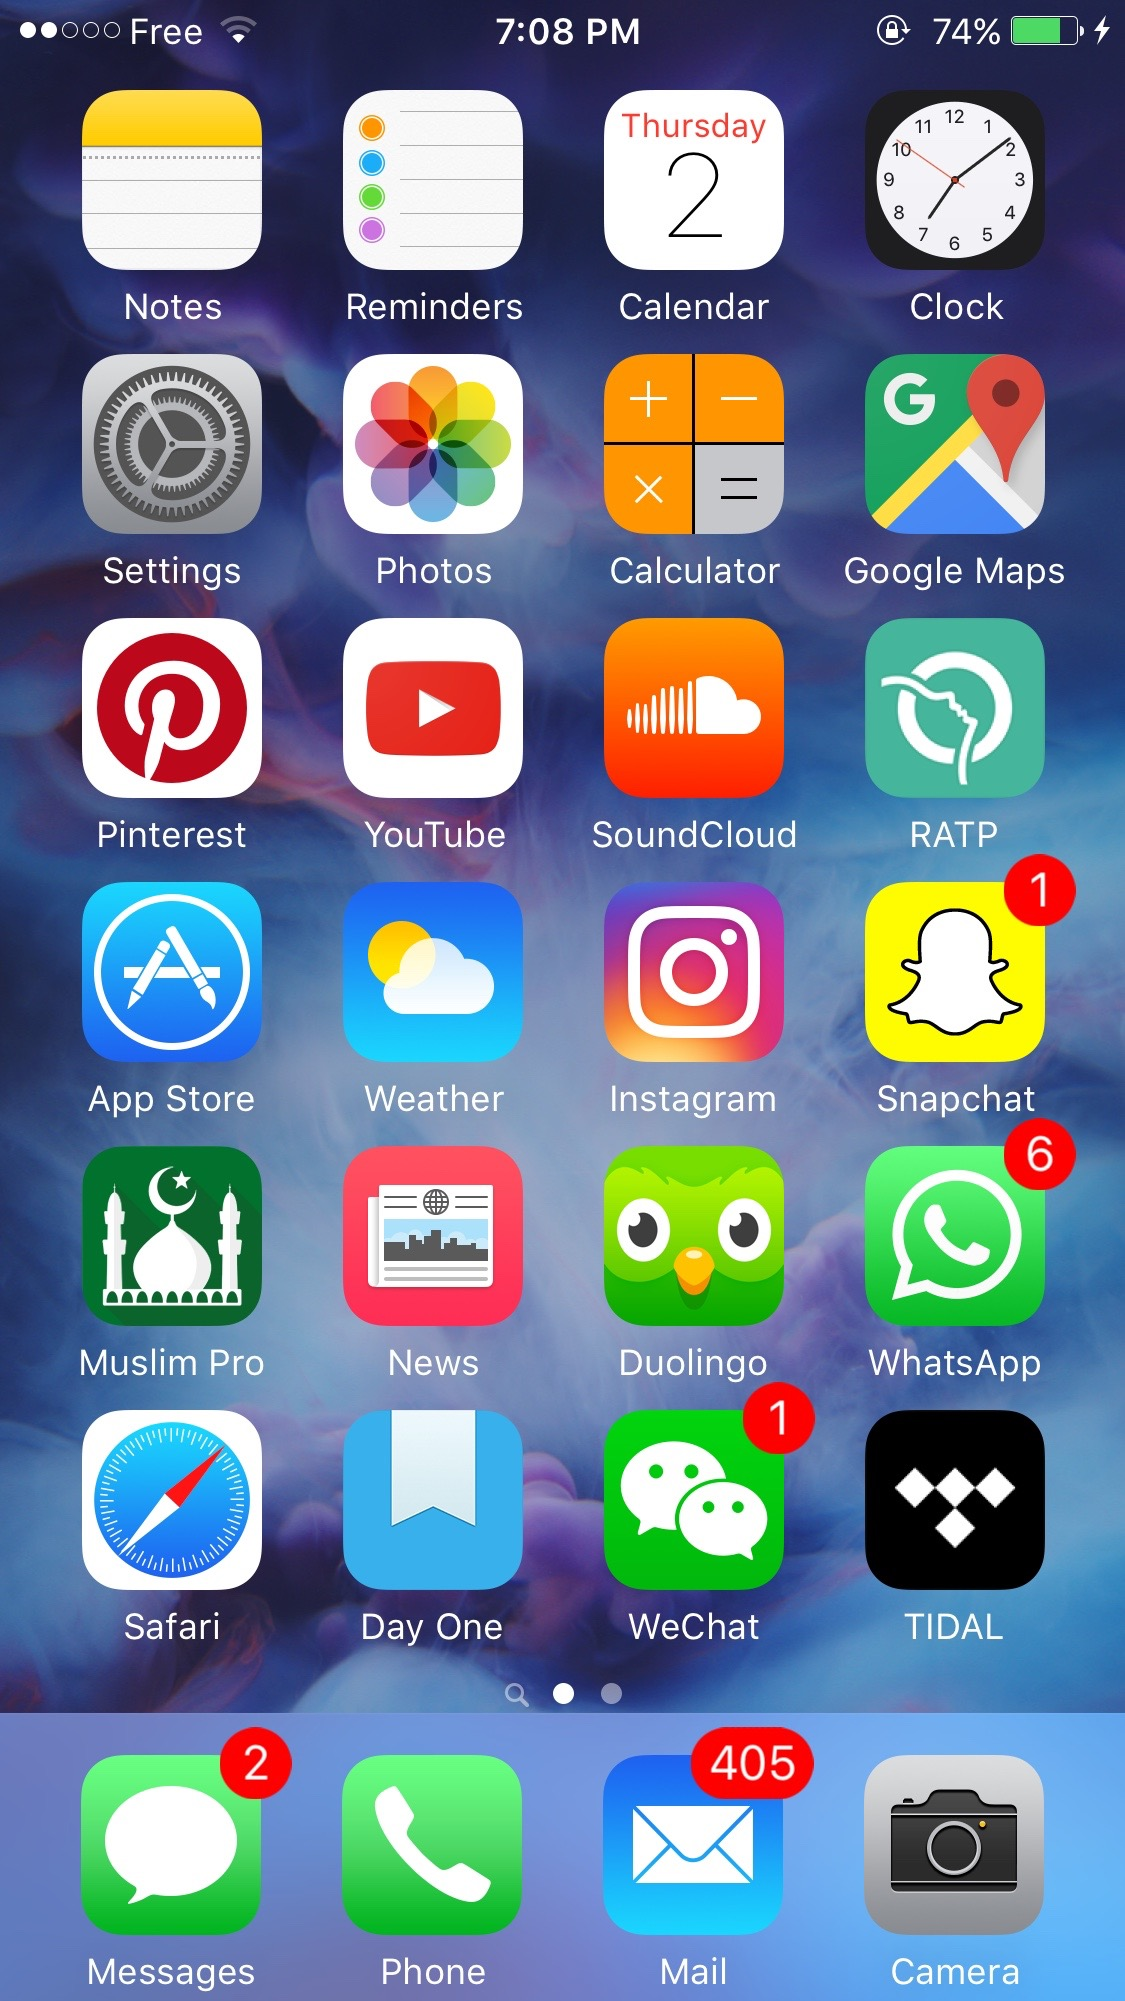 Getting ready for Ramadan: my 2016 Apple home screen.